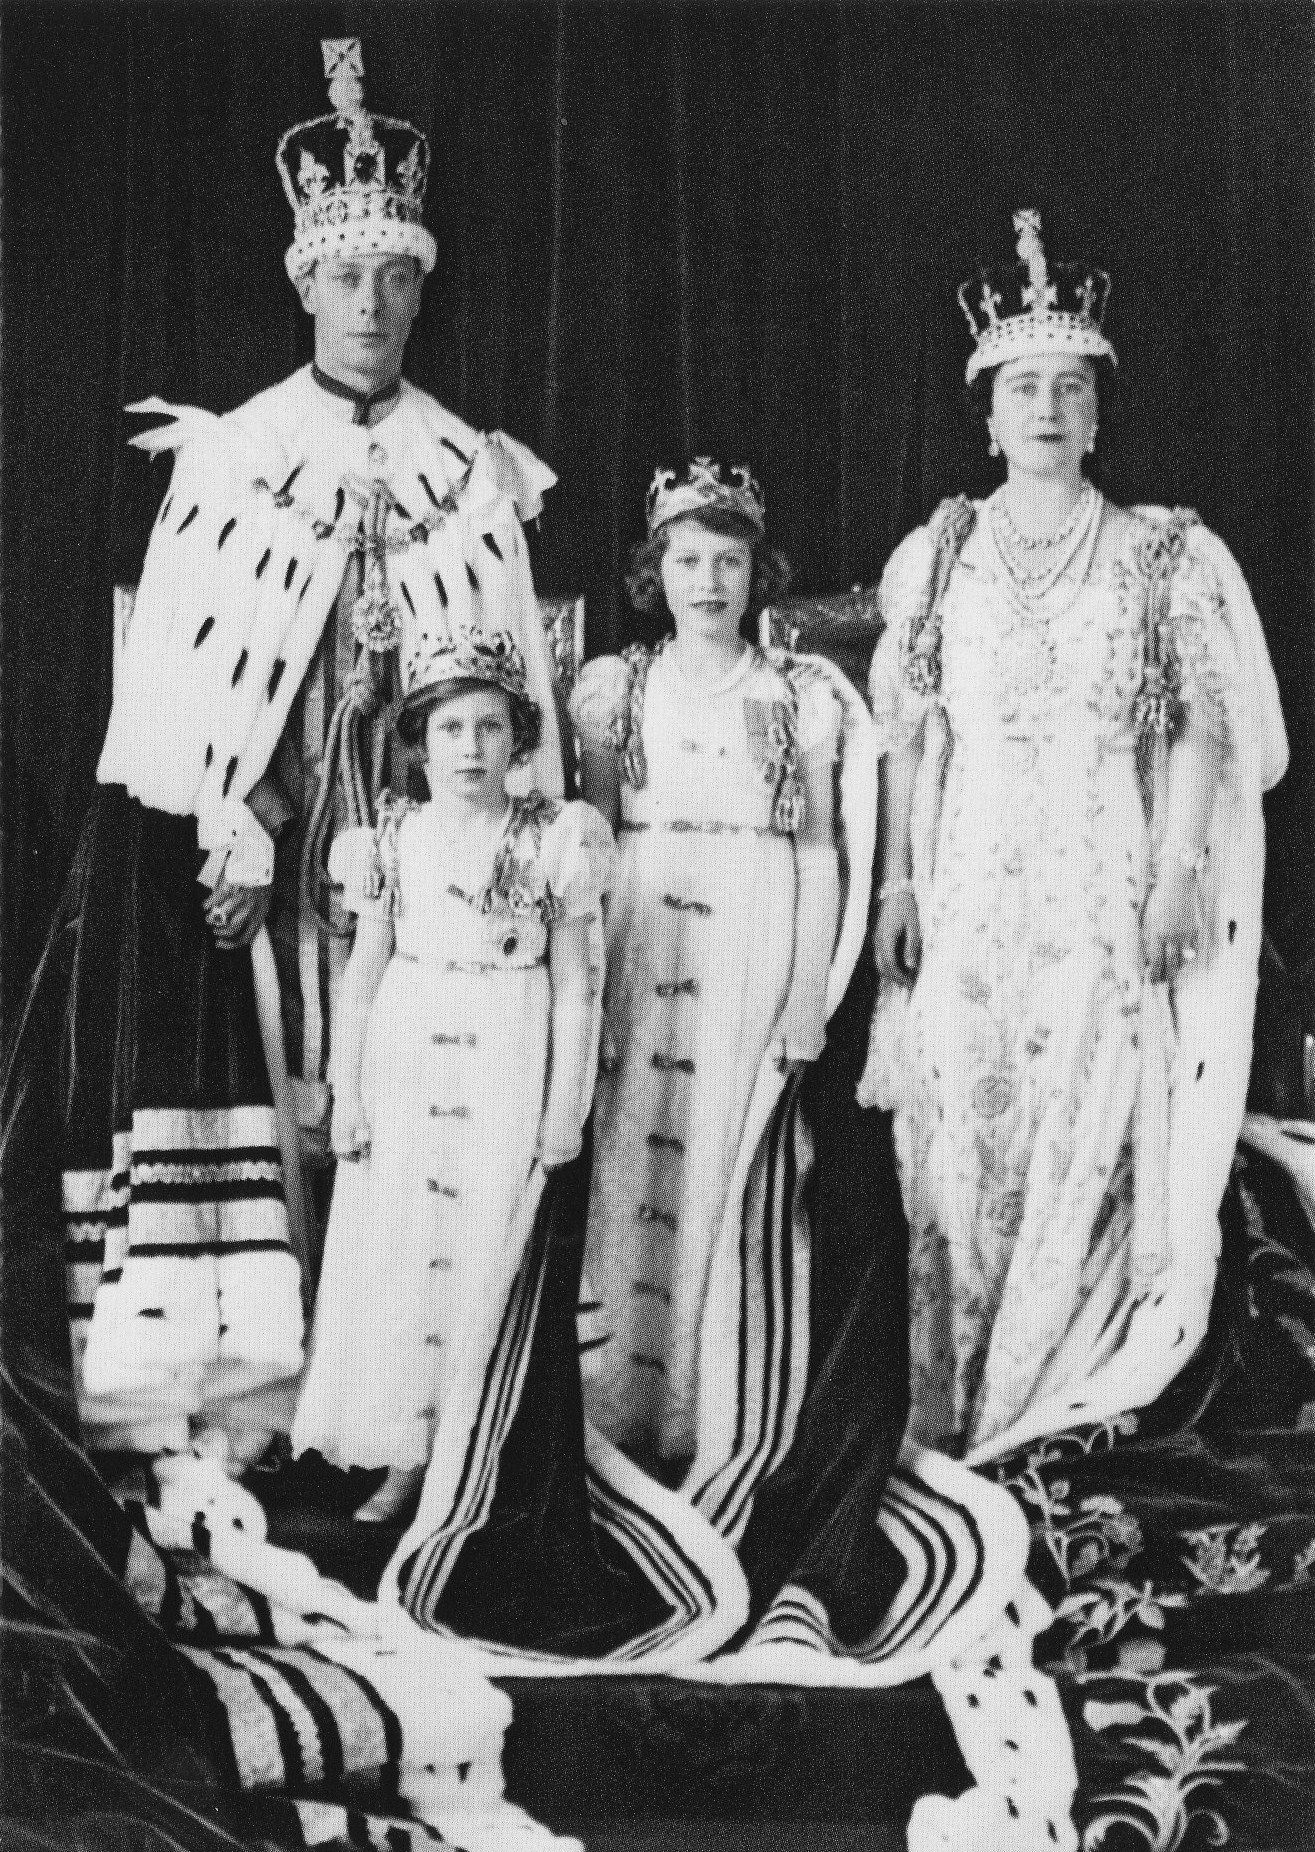 Coronation portrait of King VI, with Queen